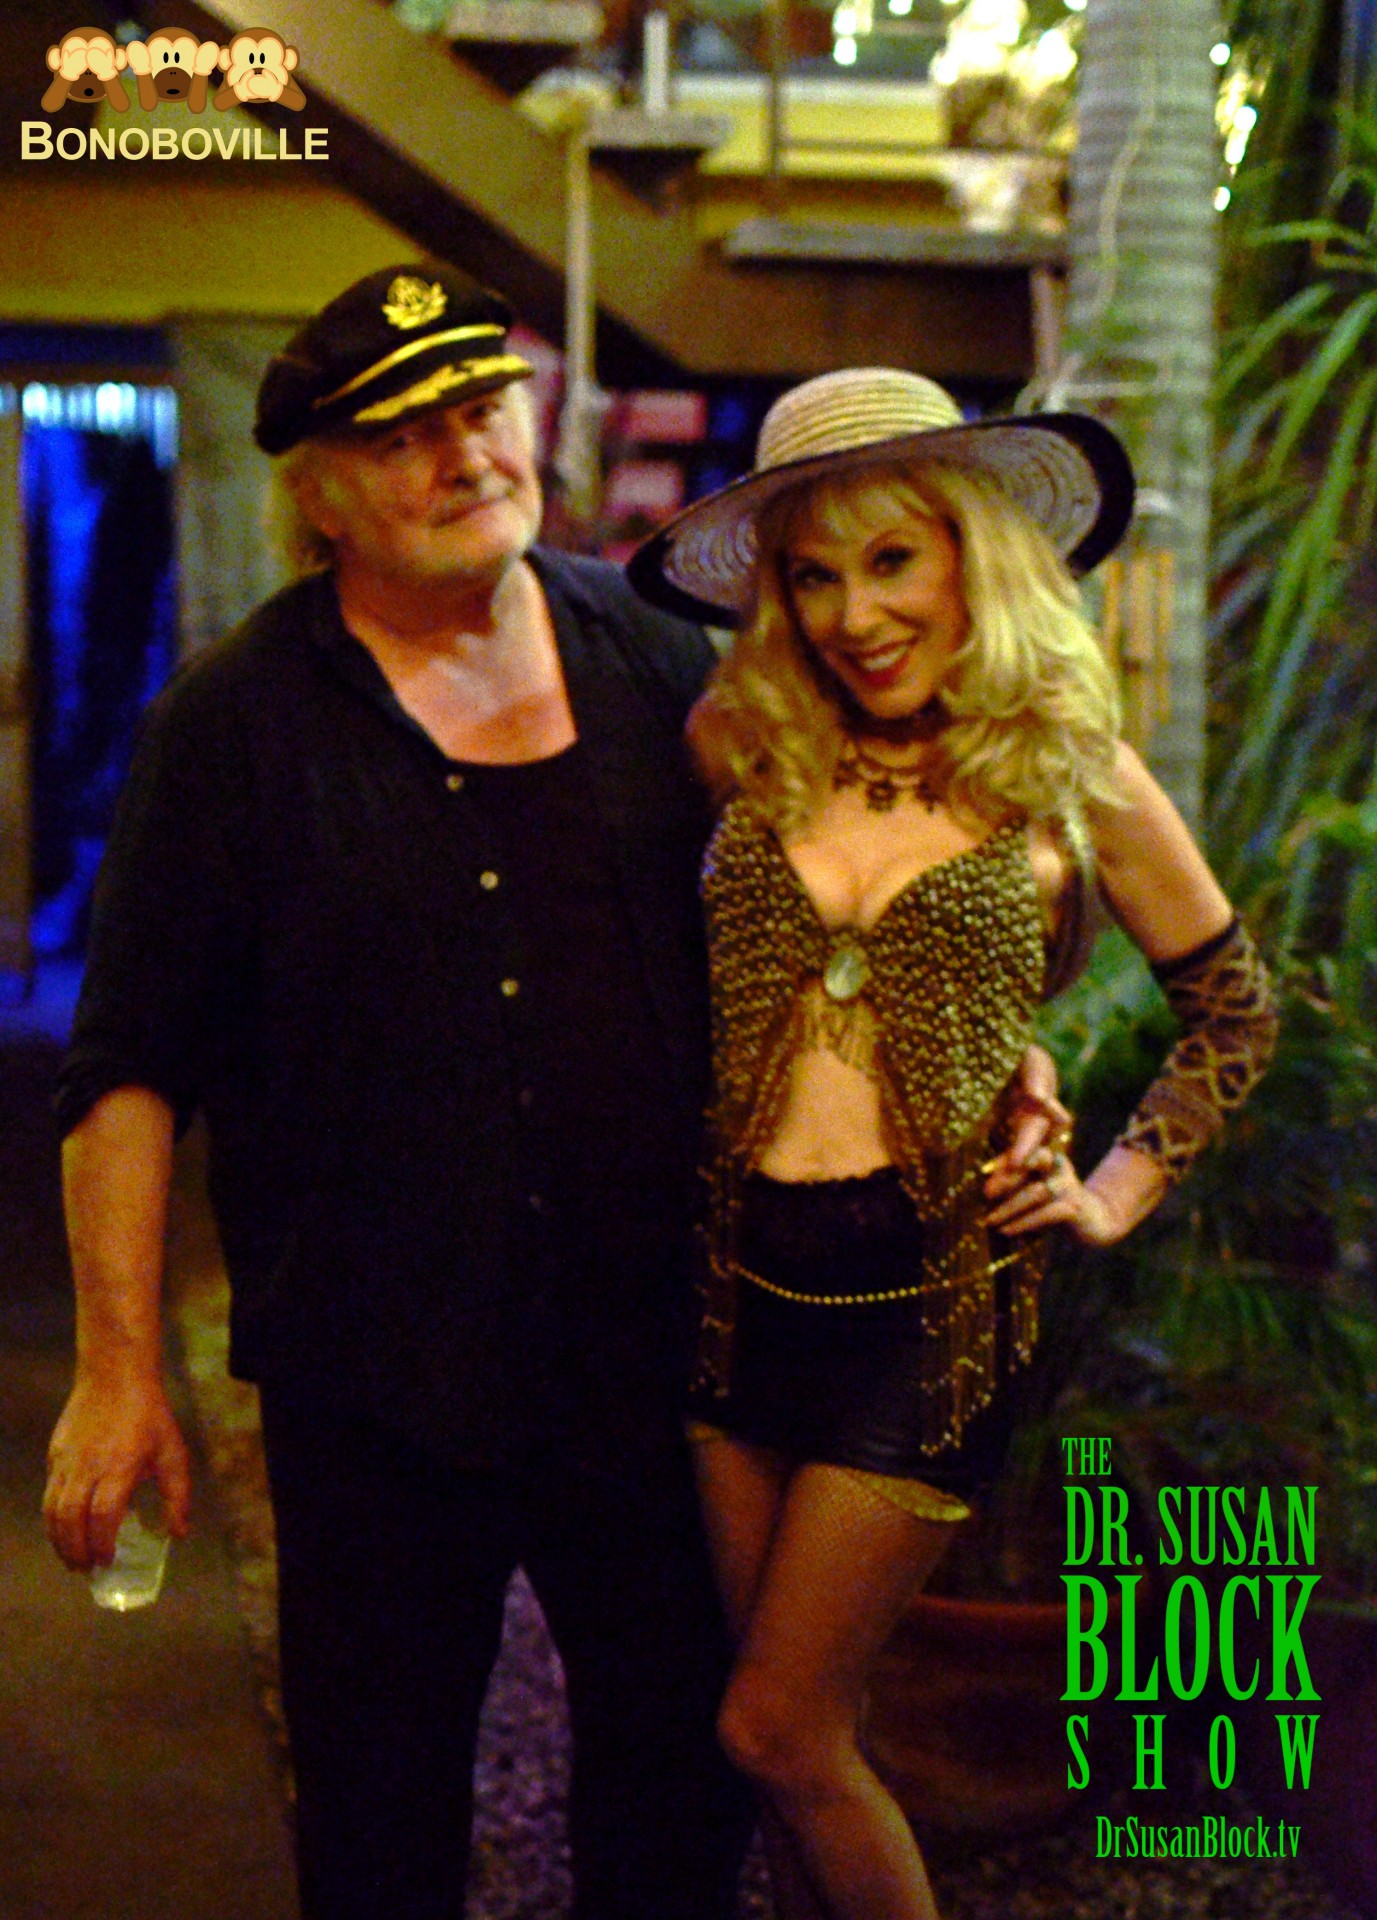 With Capt'n Max in the Garden of Bonoboville. Photo: Kevin Faircourt